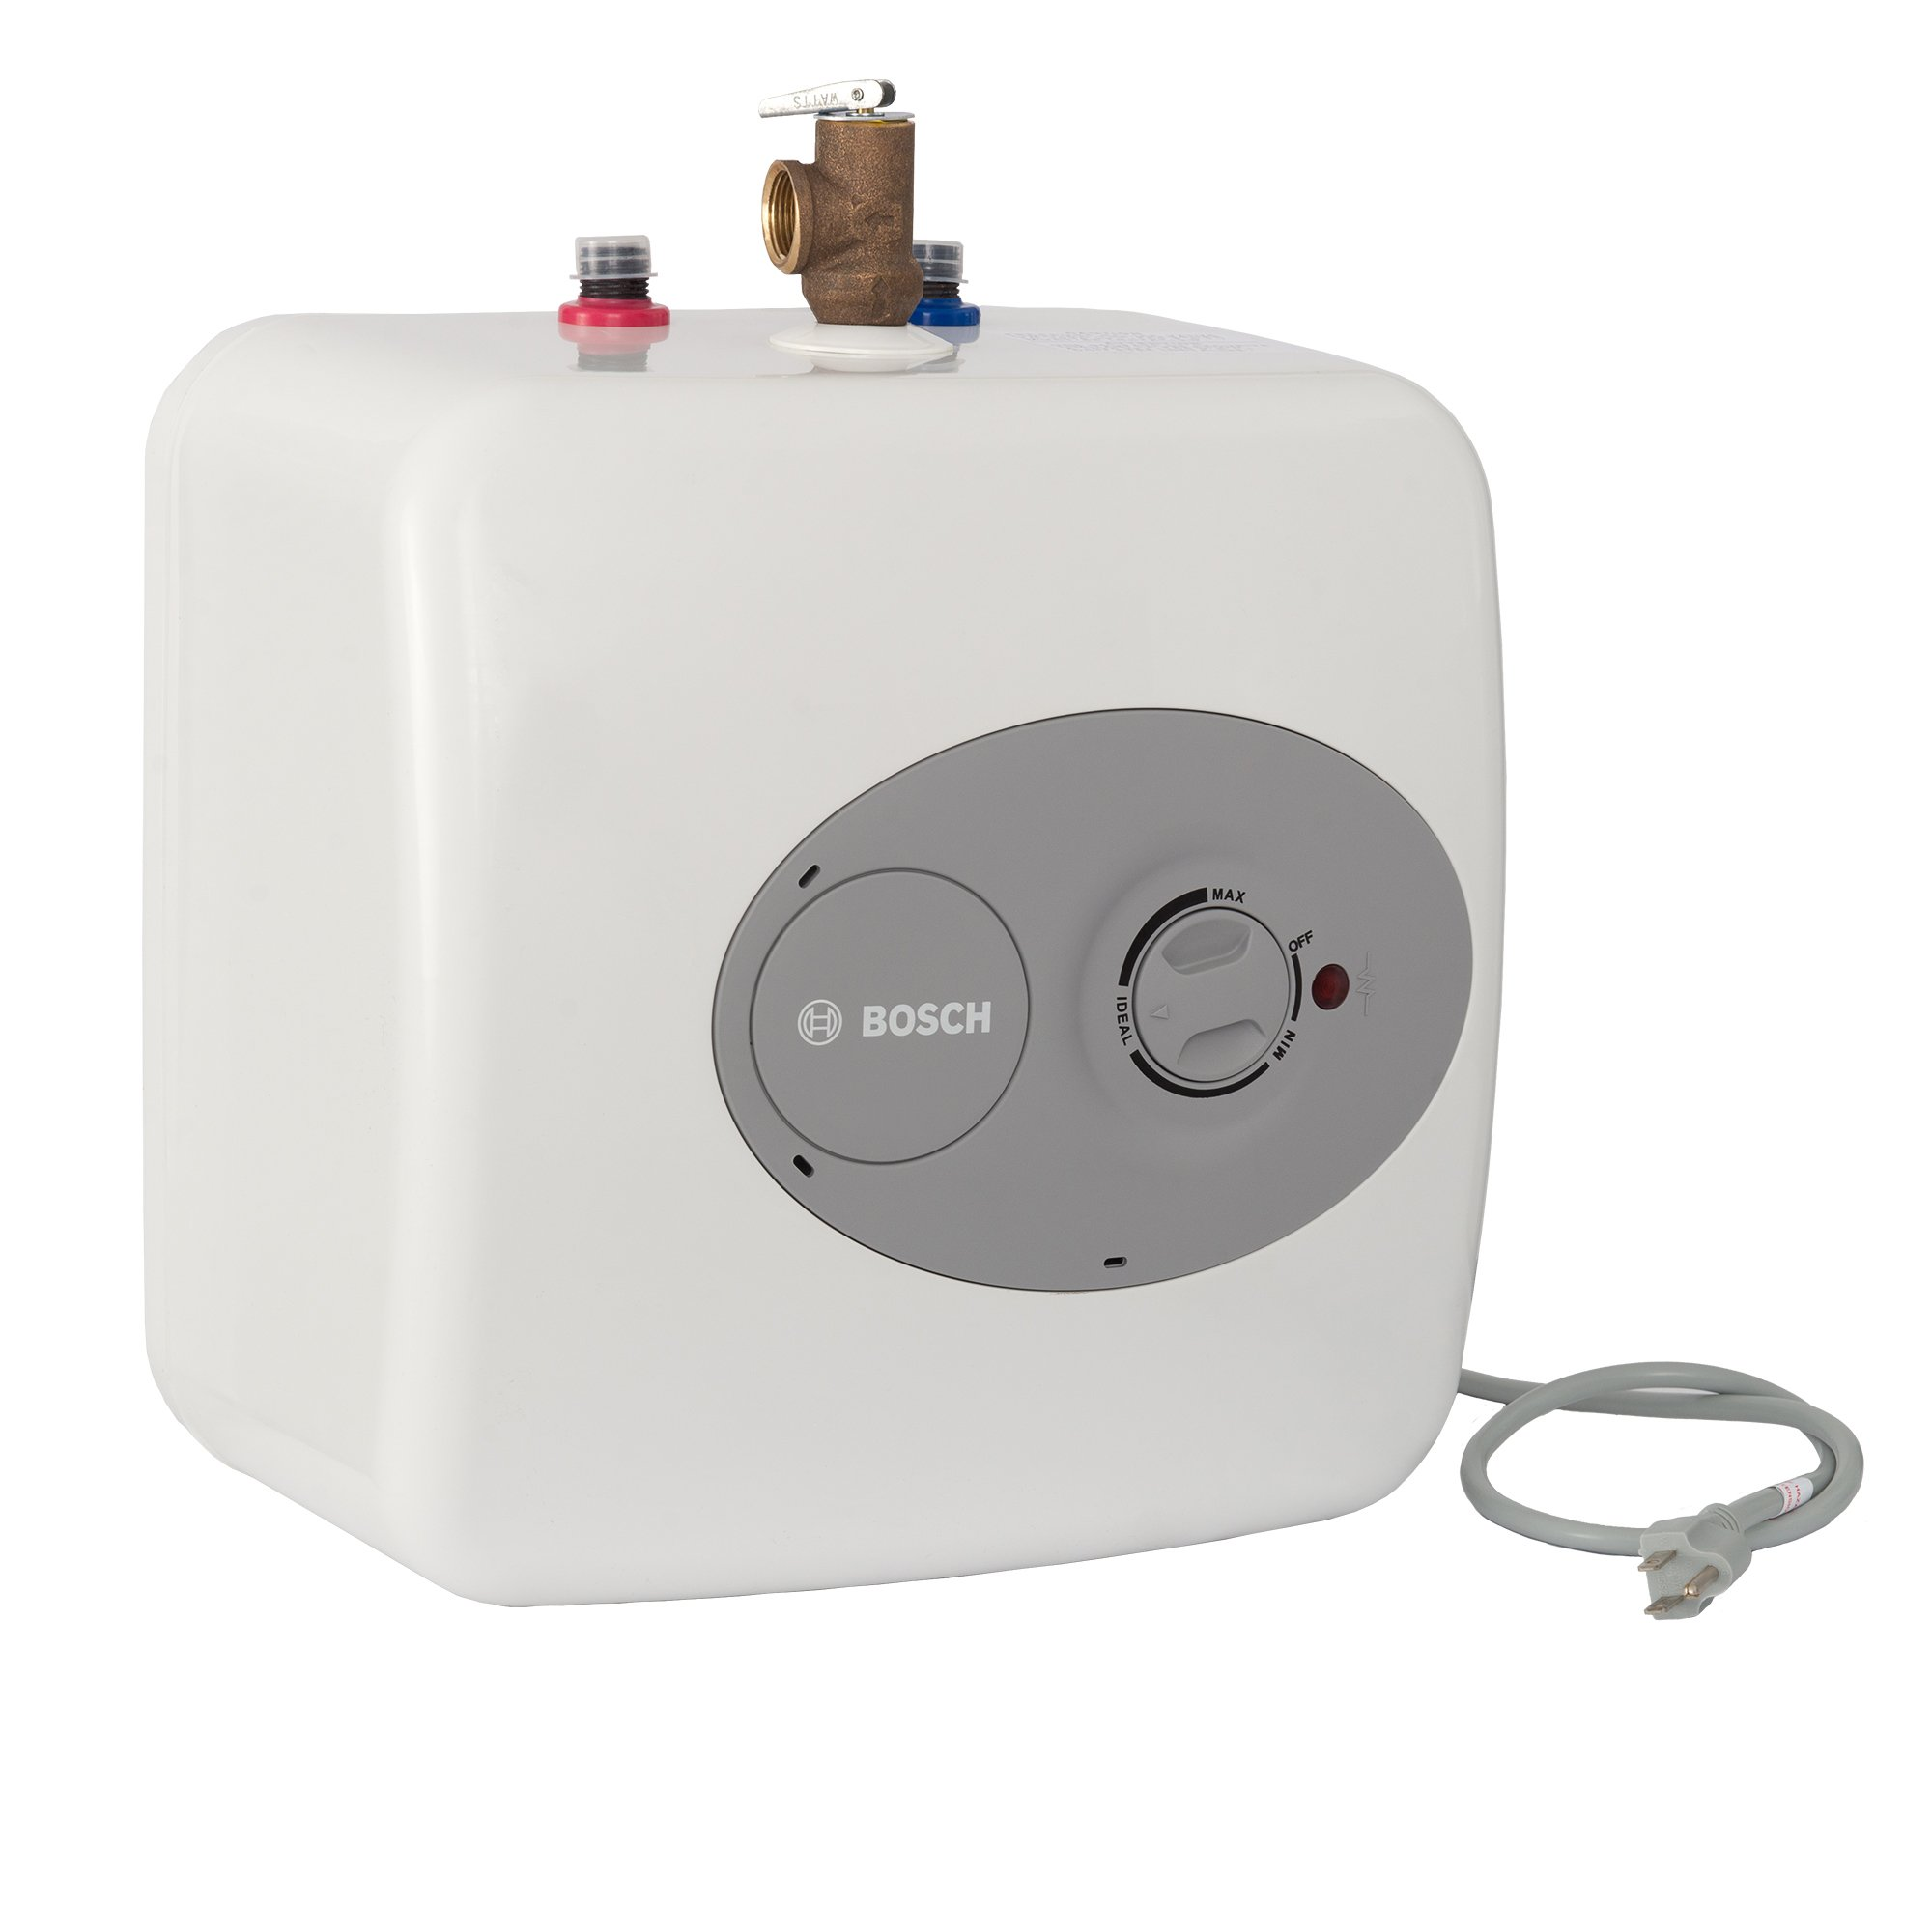 Bosch Tronic 3000 T 2.5-Gallon Electric Mini-Tank Water Heater by Bosch Thermotechnology